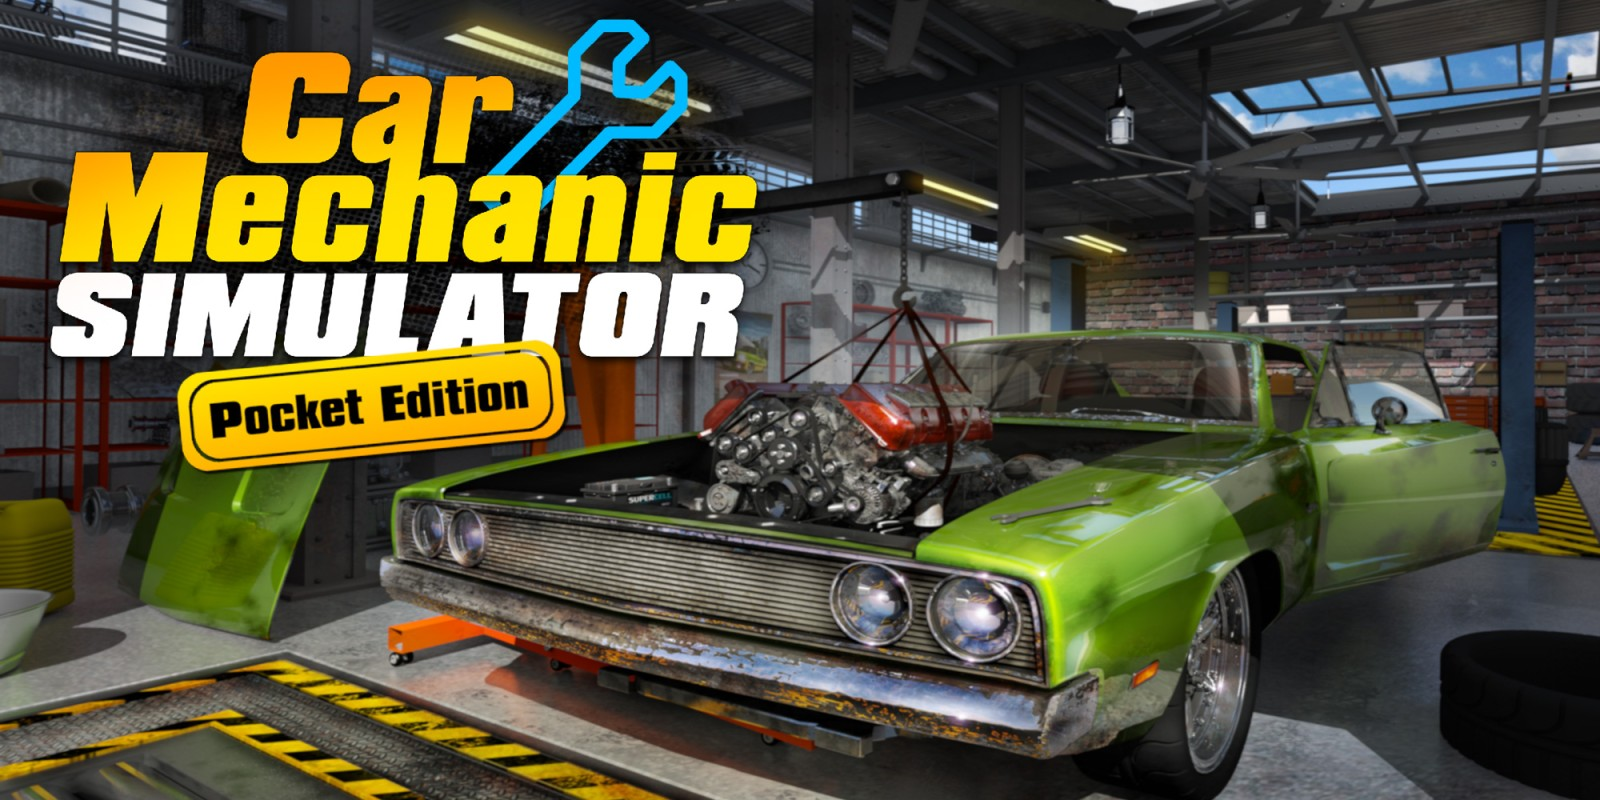 Car Mechanic Simulator Pocket Edition